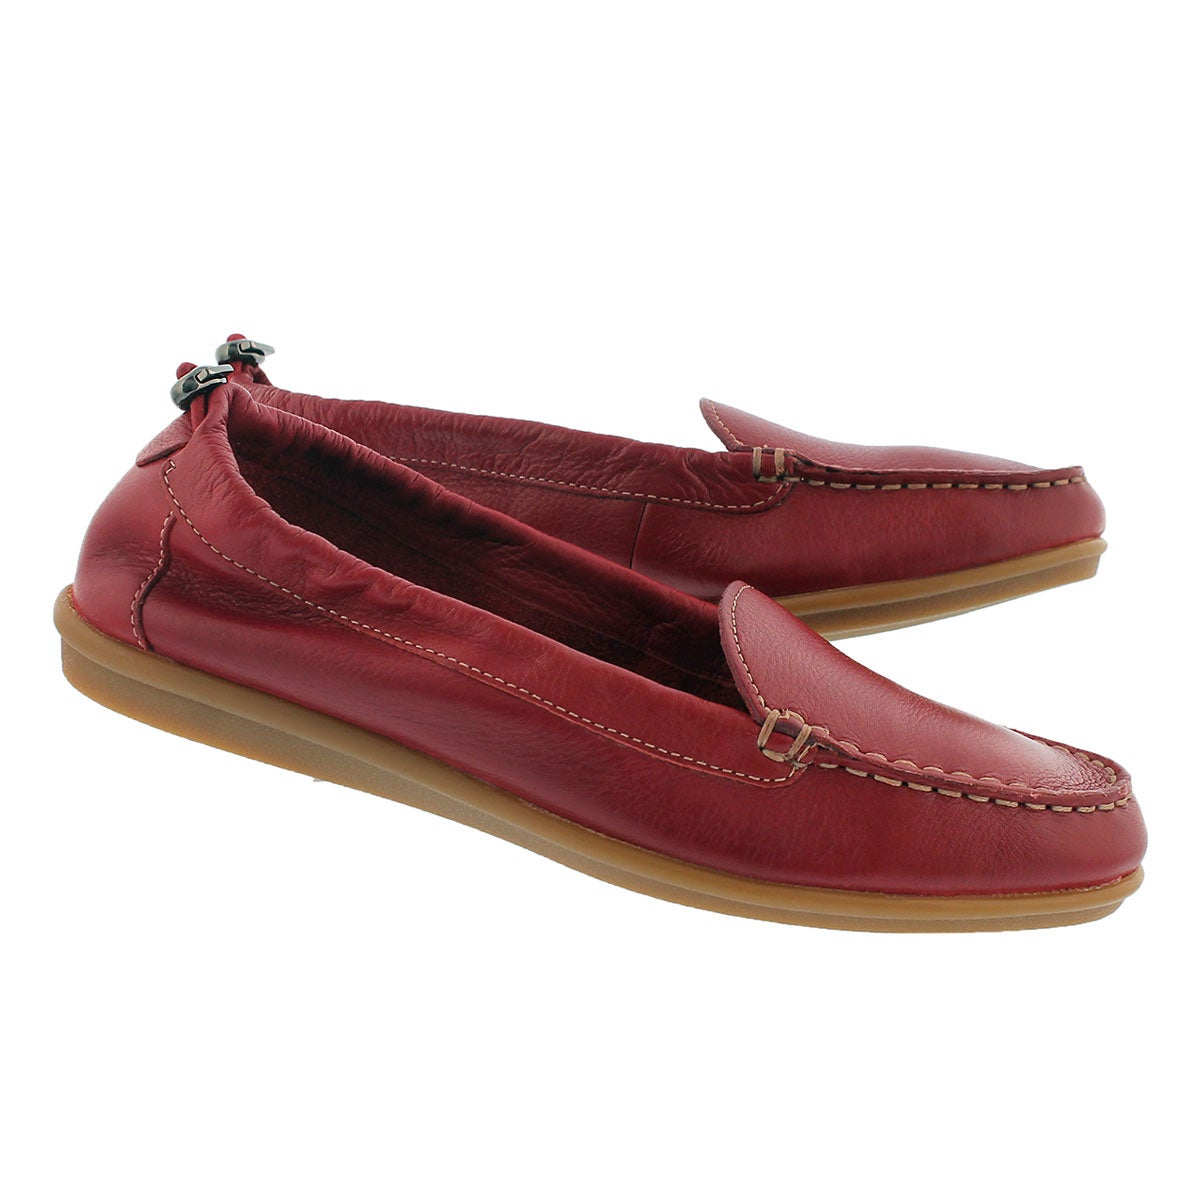 Lds Endless Wink red casual slip on